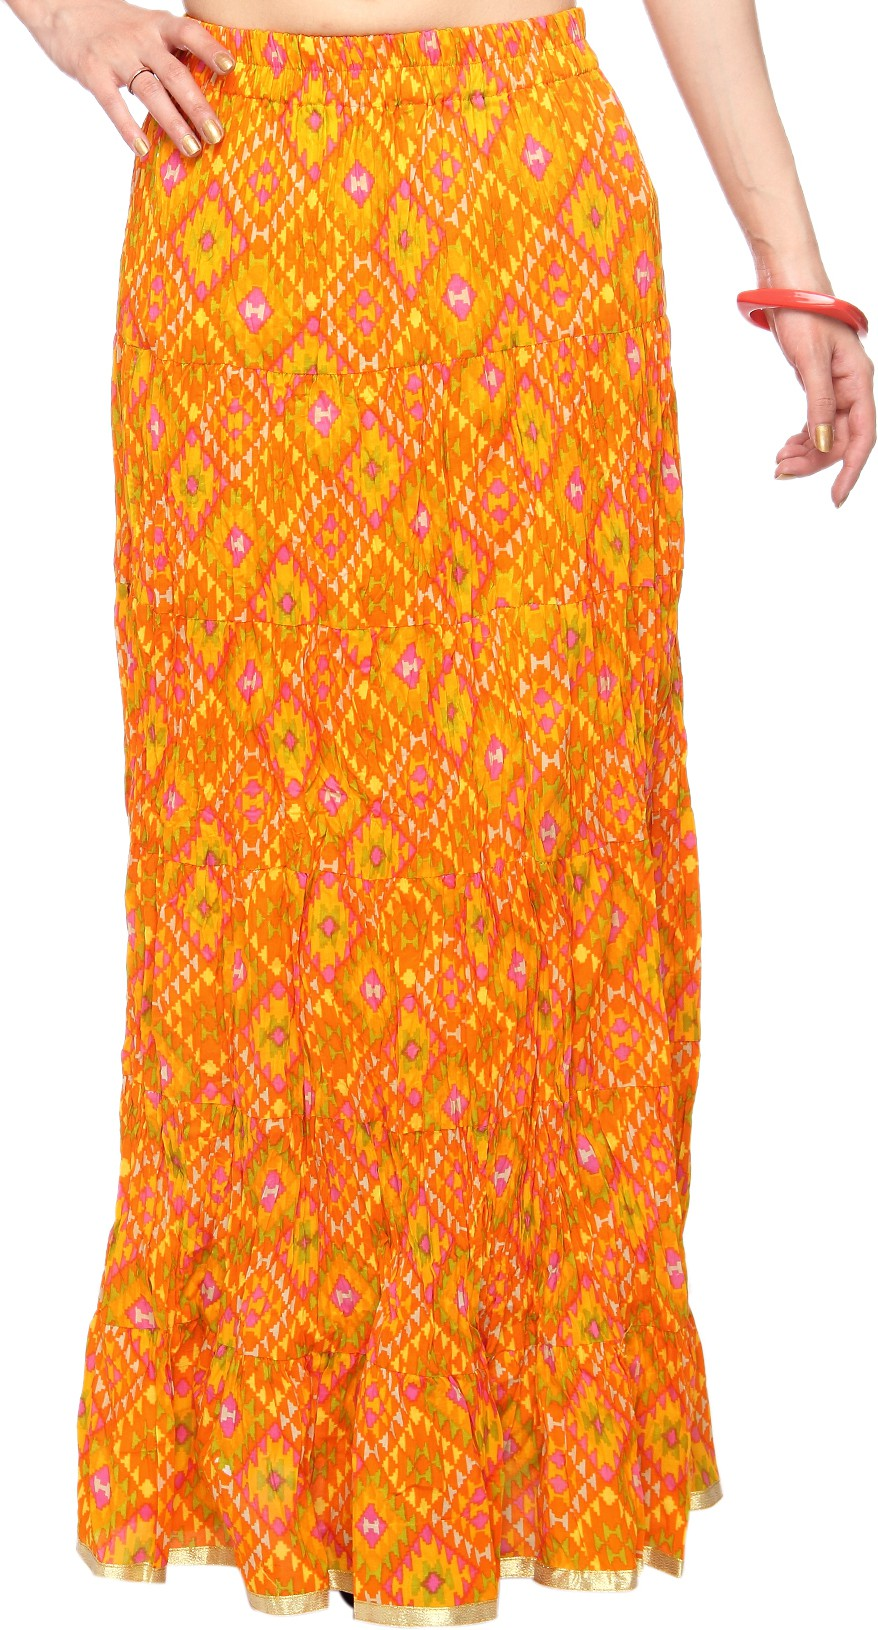 Mina Bazaar Printed Womens A-line Yellow, Orange Skirt